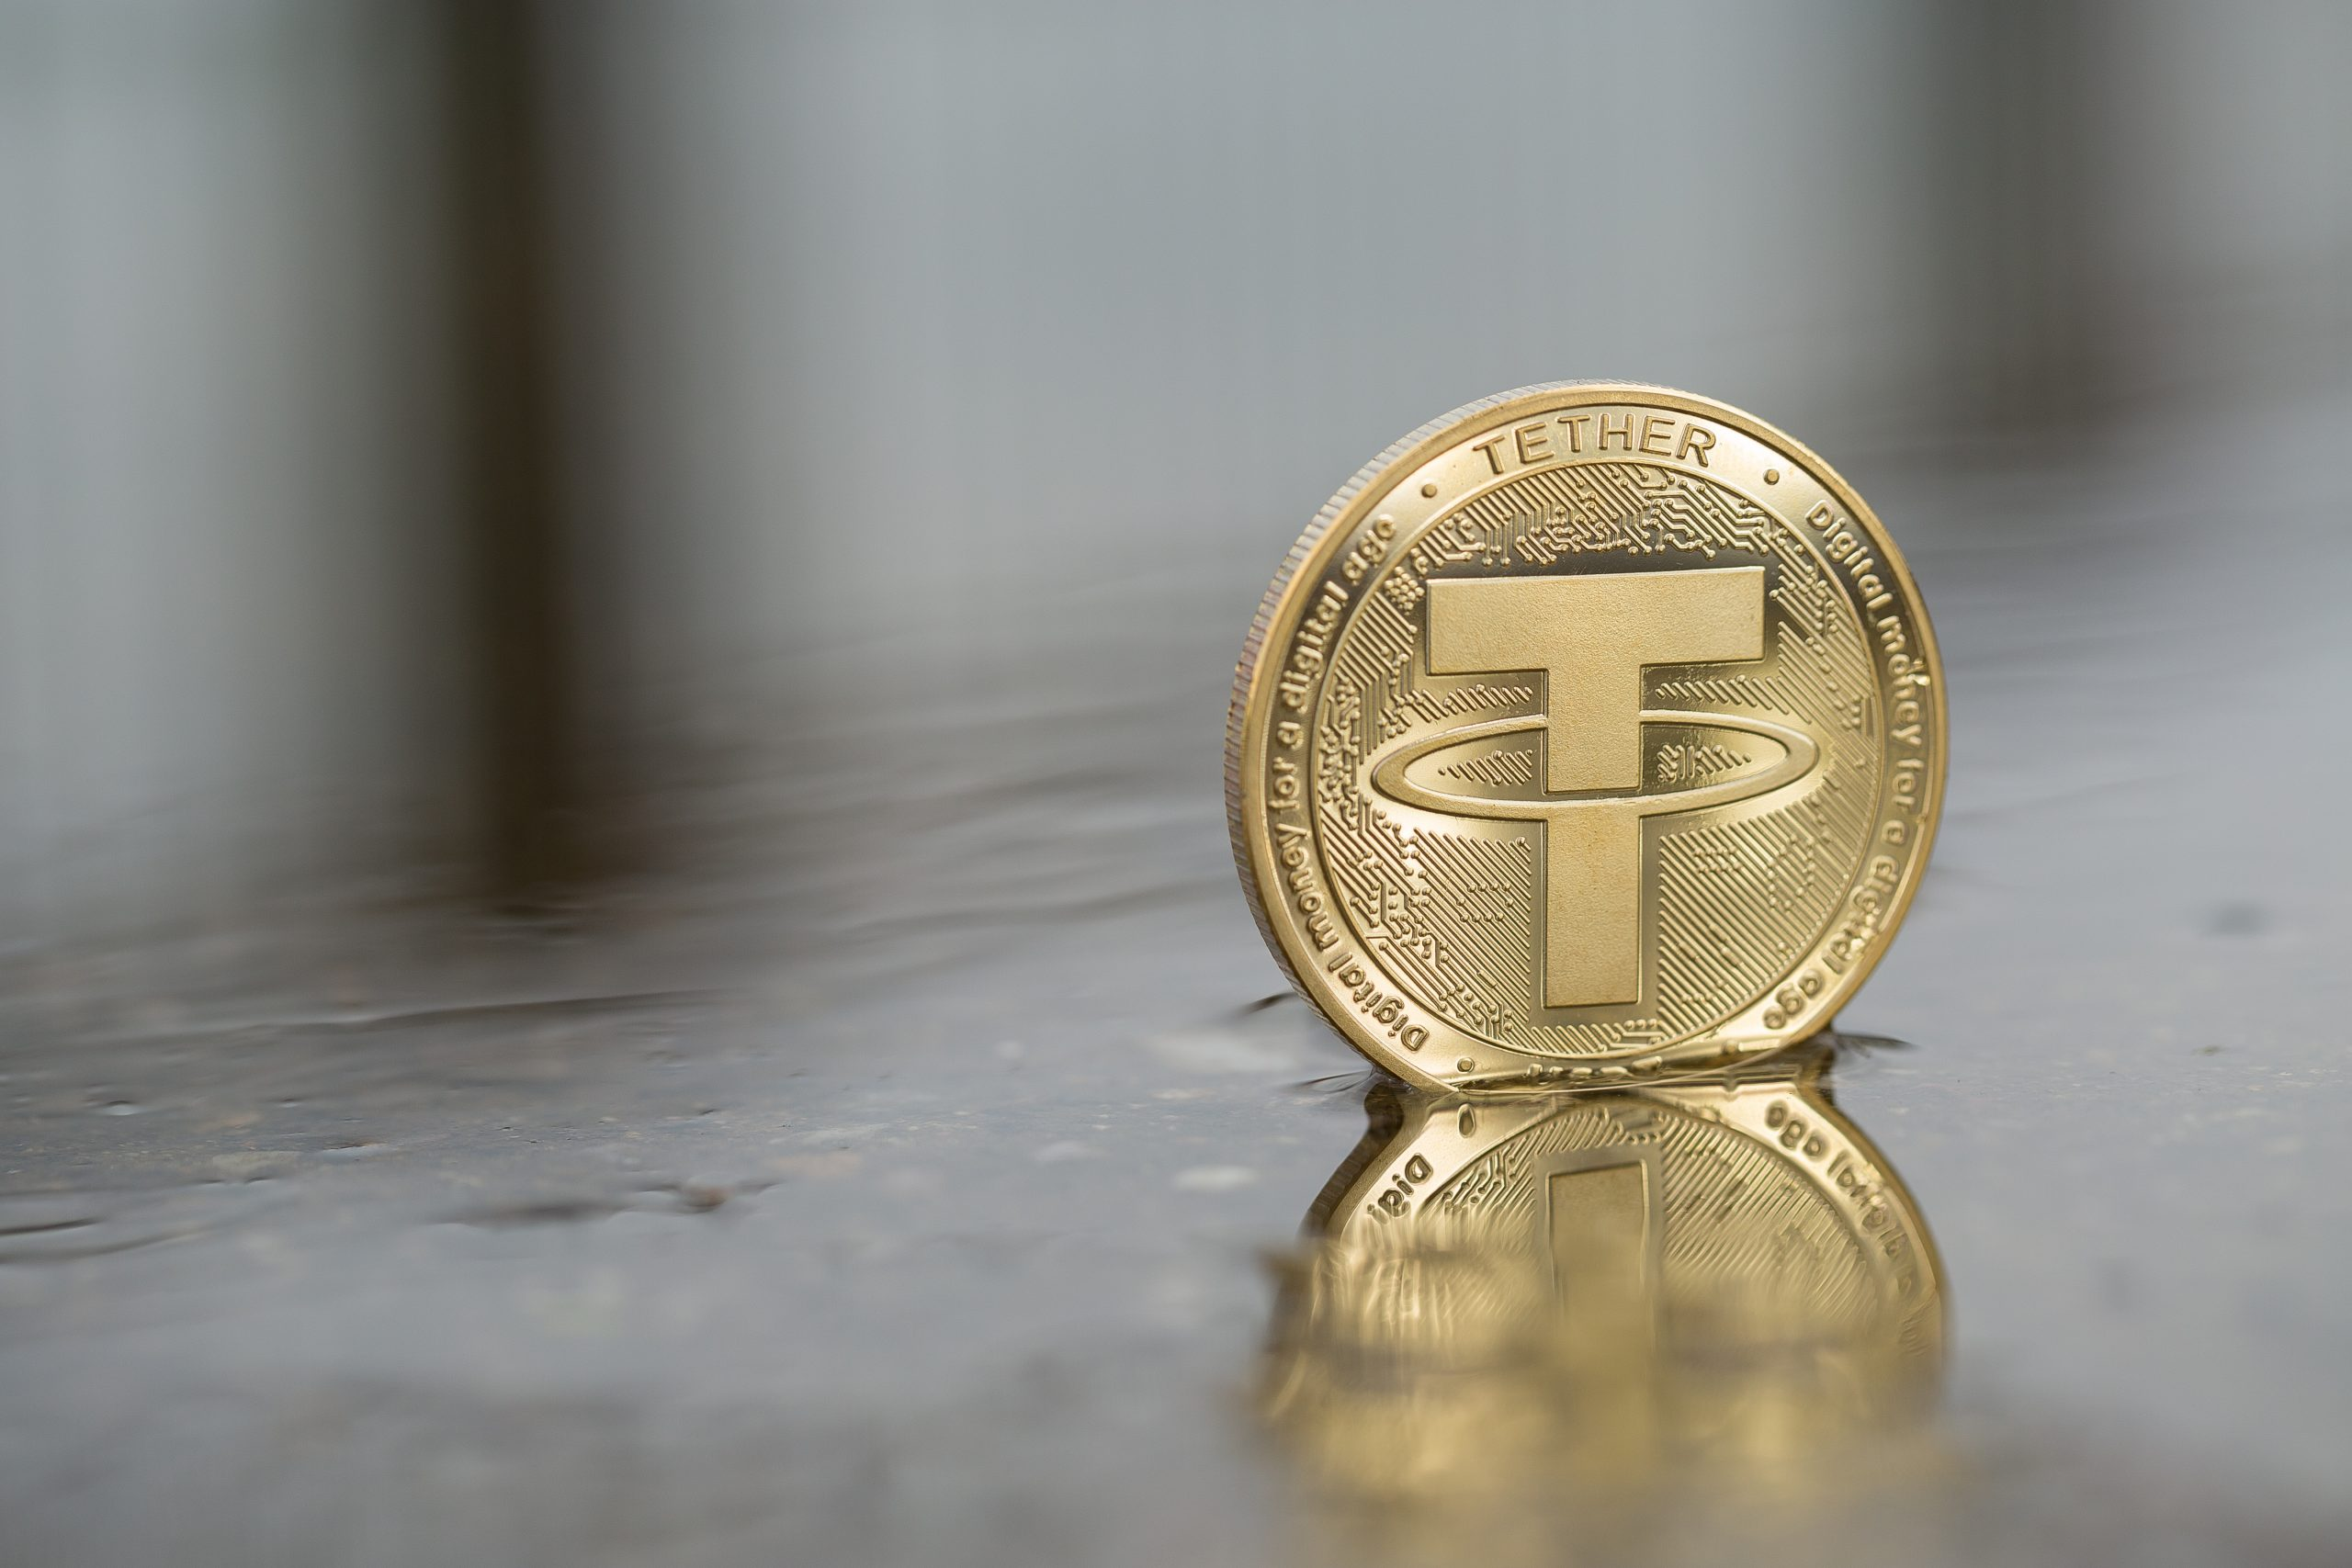 Is Tether Ideal a Rip-off to Enrich Bitcoin Merchants?